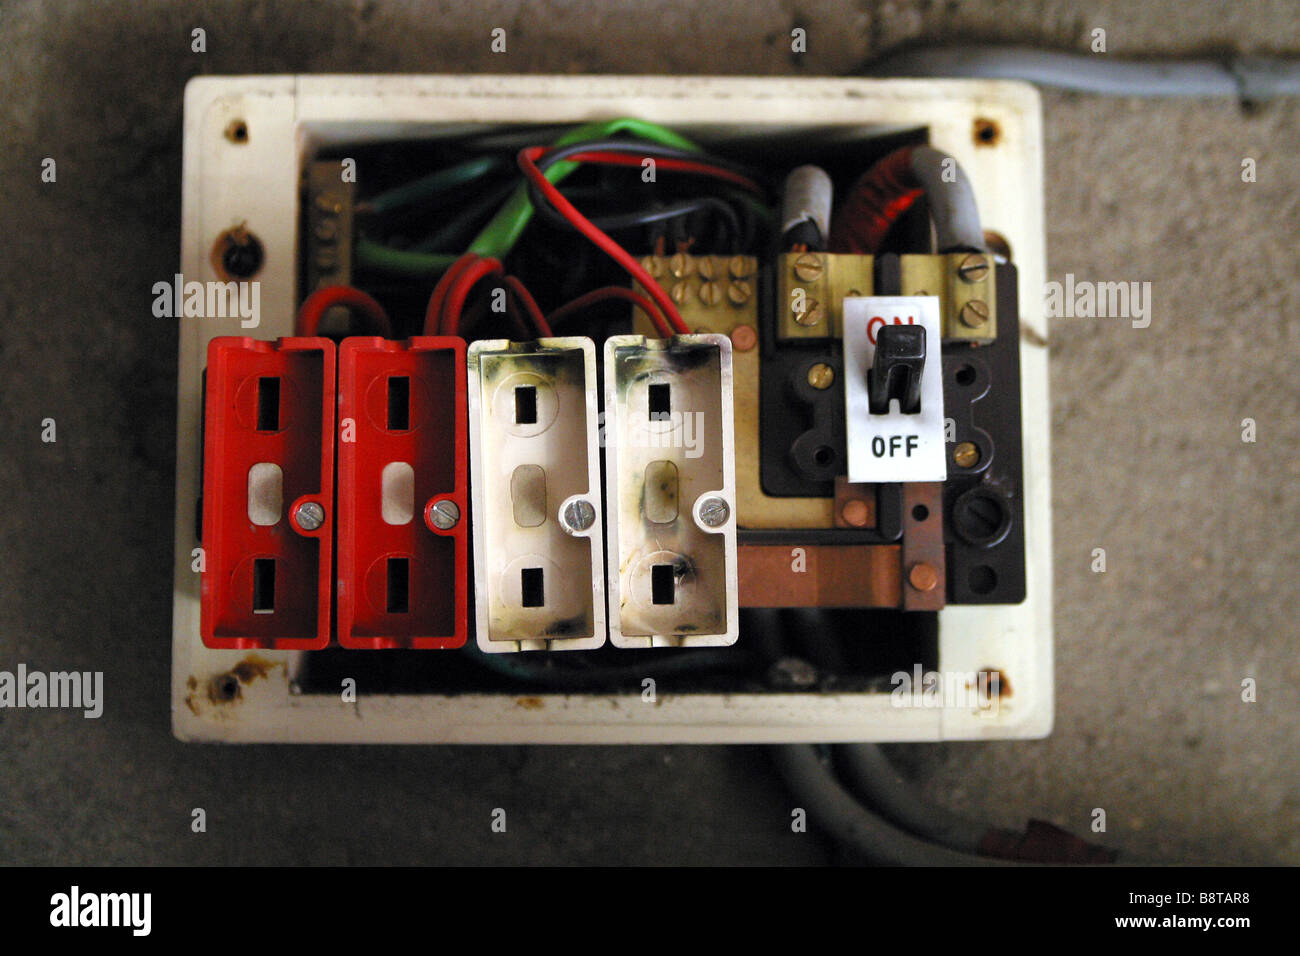 hight resolution of old fuse box wiring wiring diagram blogs old wiring 30 amp fuse box old fuse box wiring